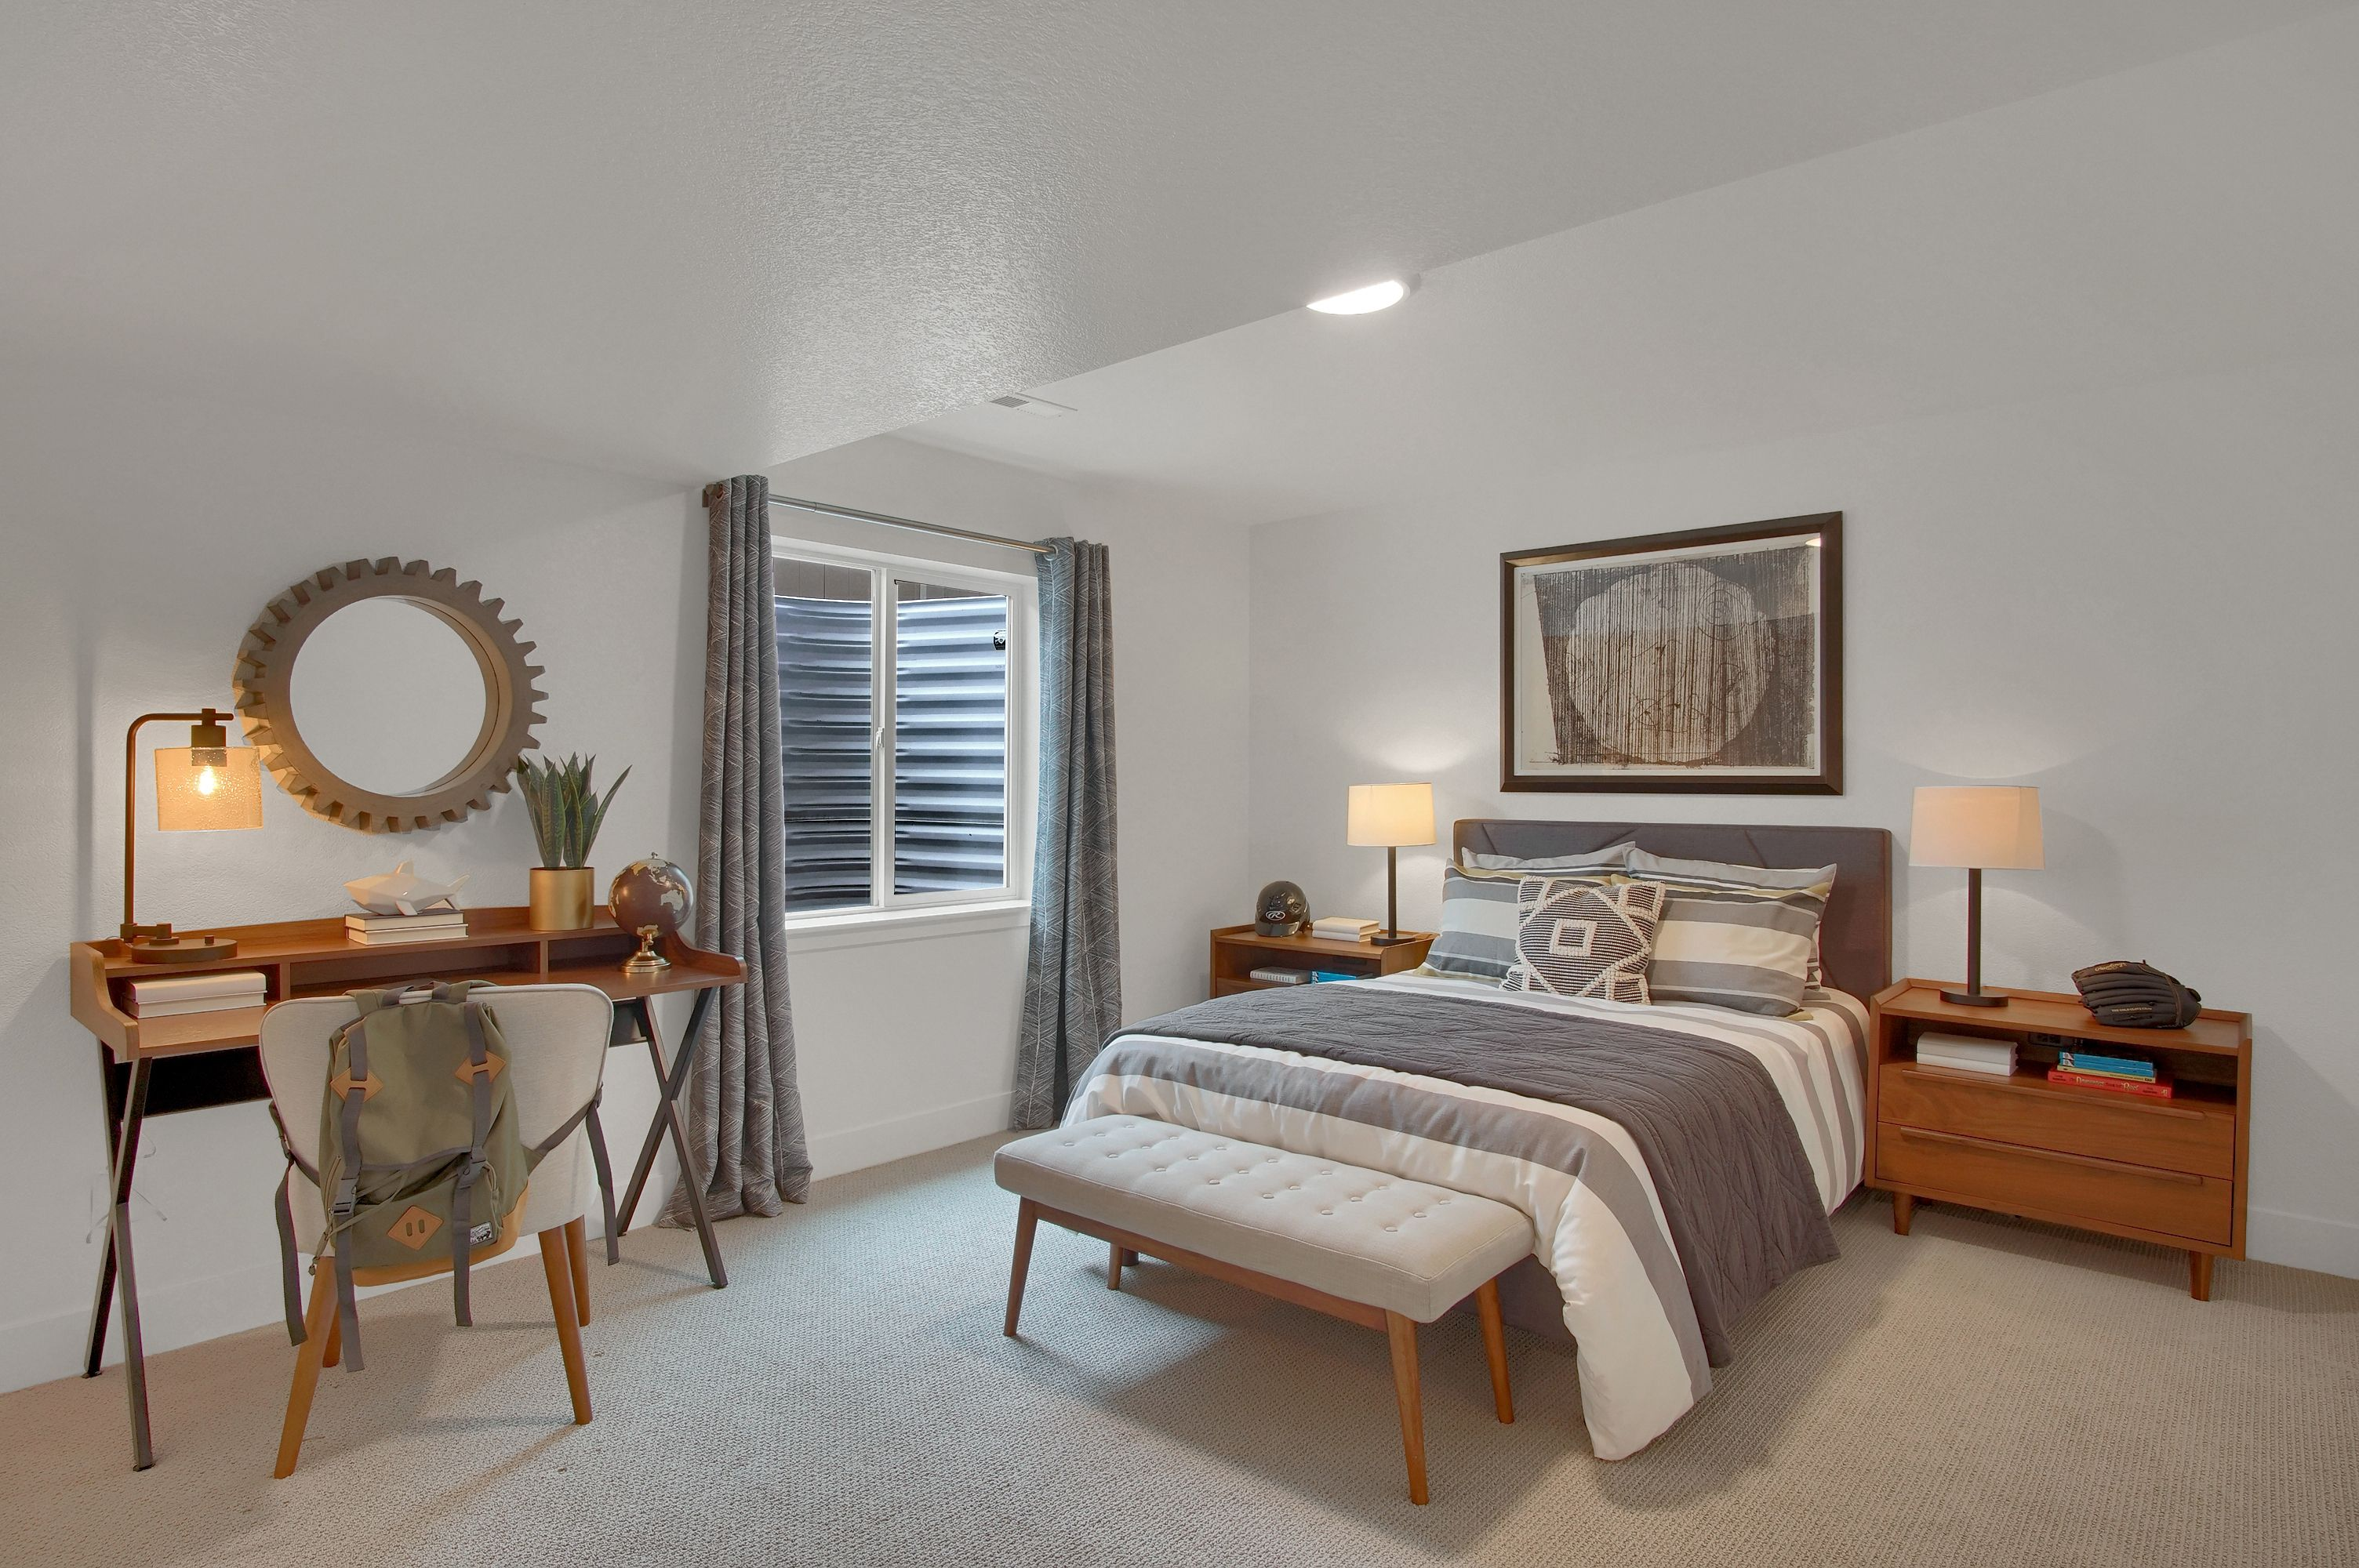 Bedroom featured in the Vineyard By Keller Homes, A Toll Bros. Co. in Colorado Springs, CO